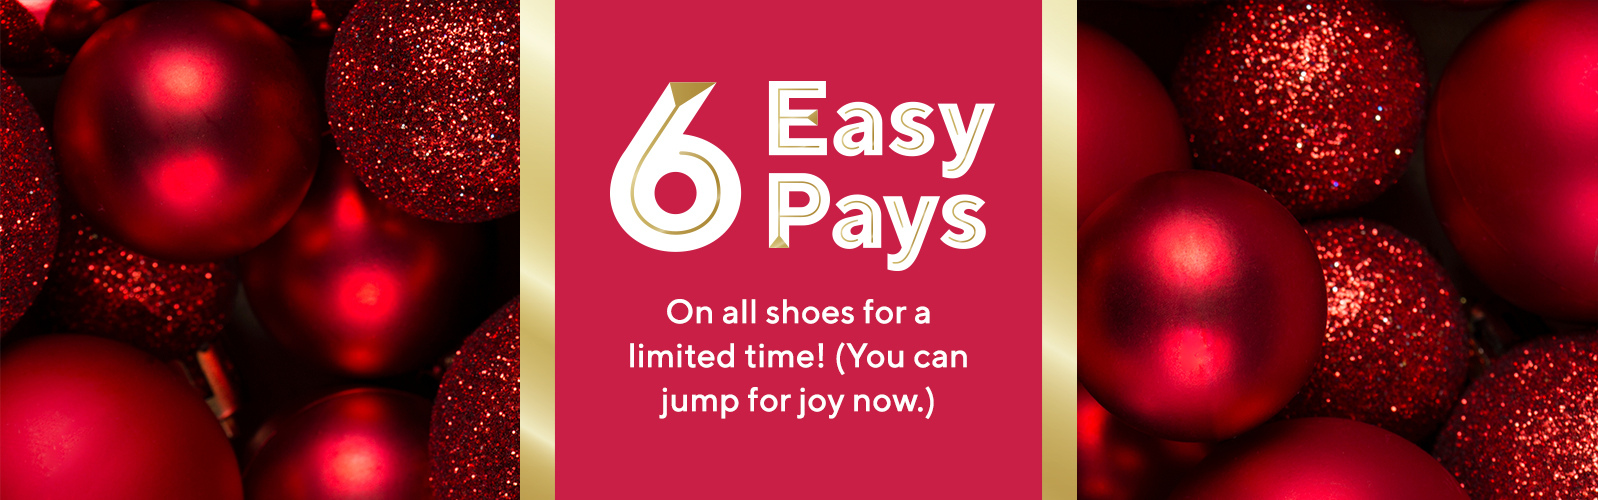 6 Easy Pays.  On all shoes for a limited time!   (You can jump for joy now.)